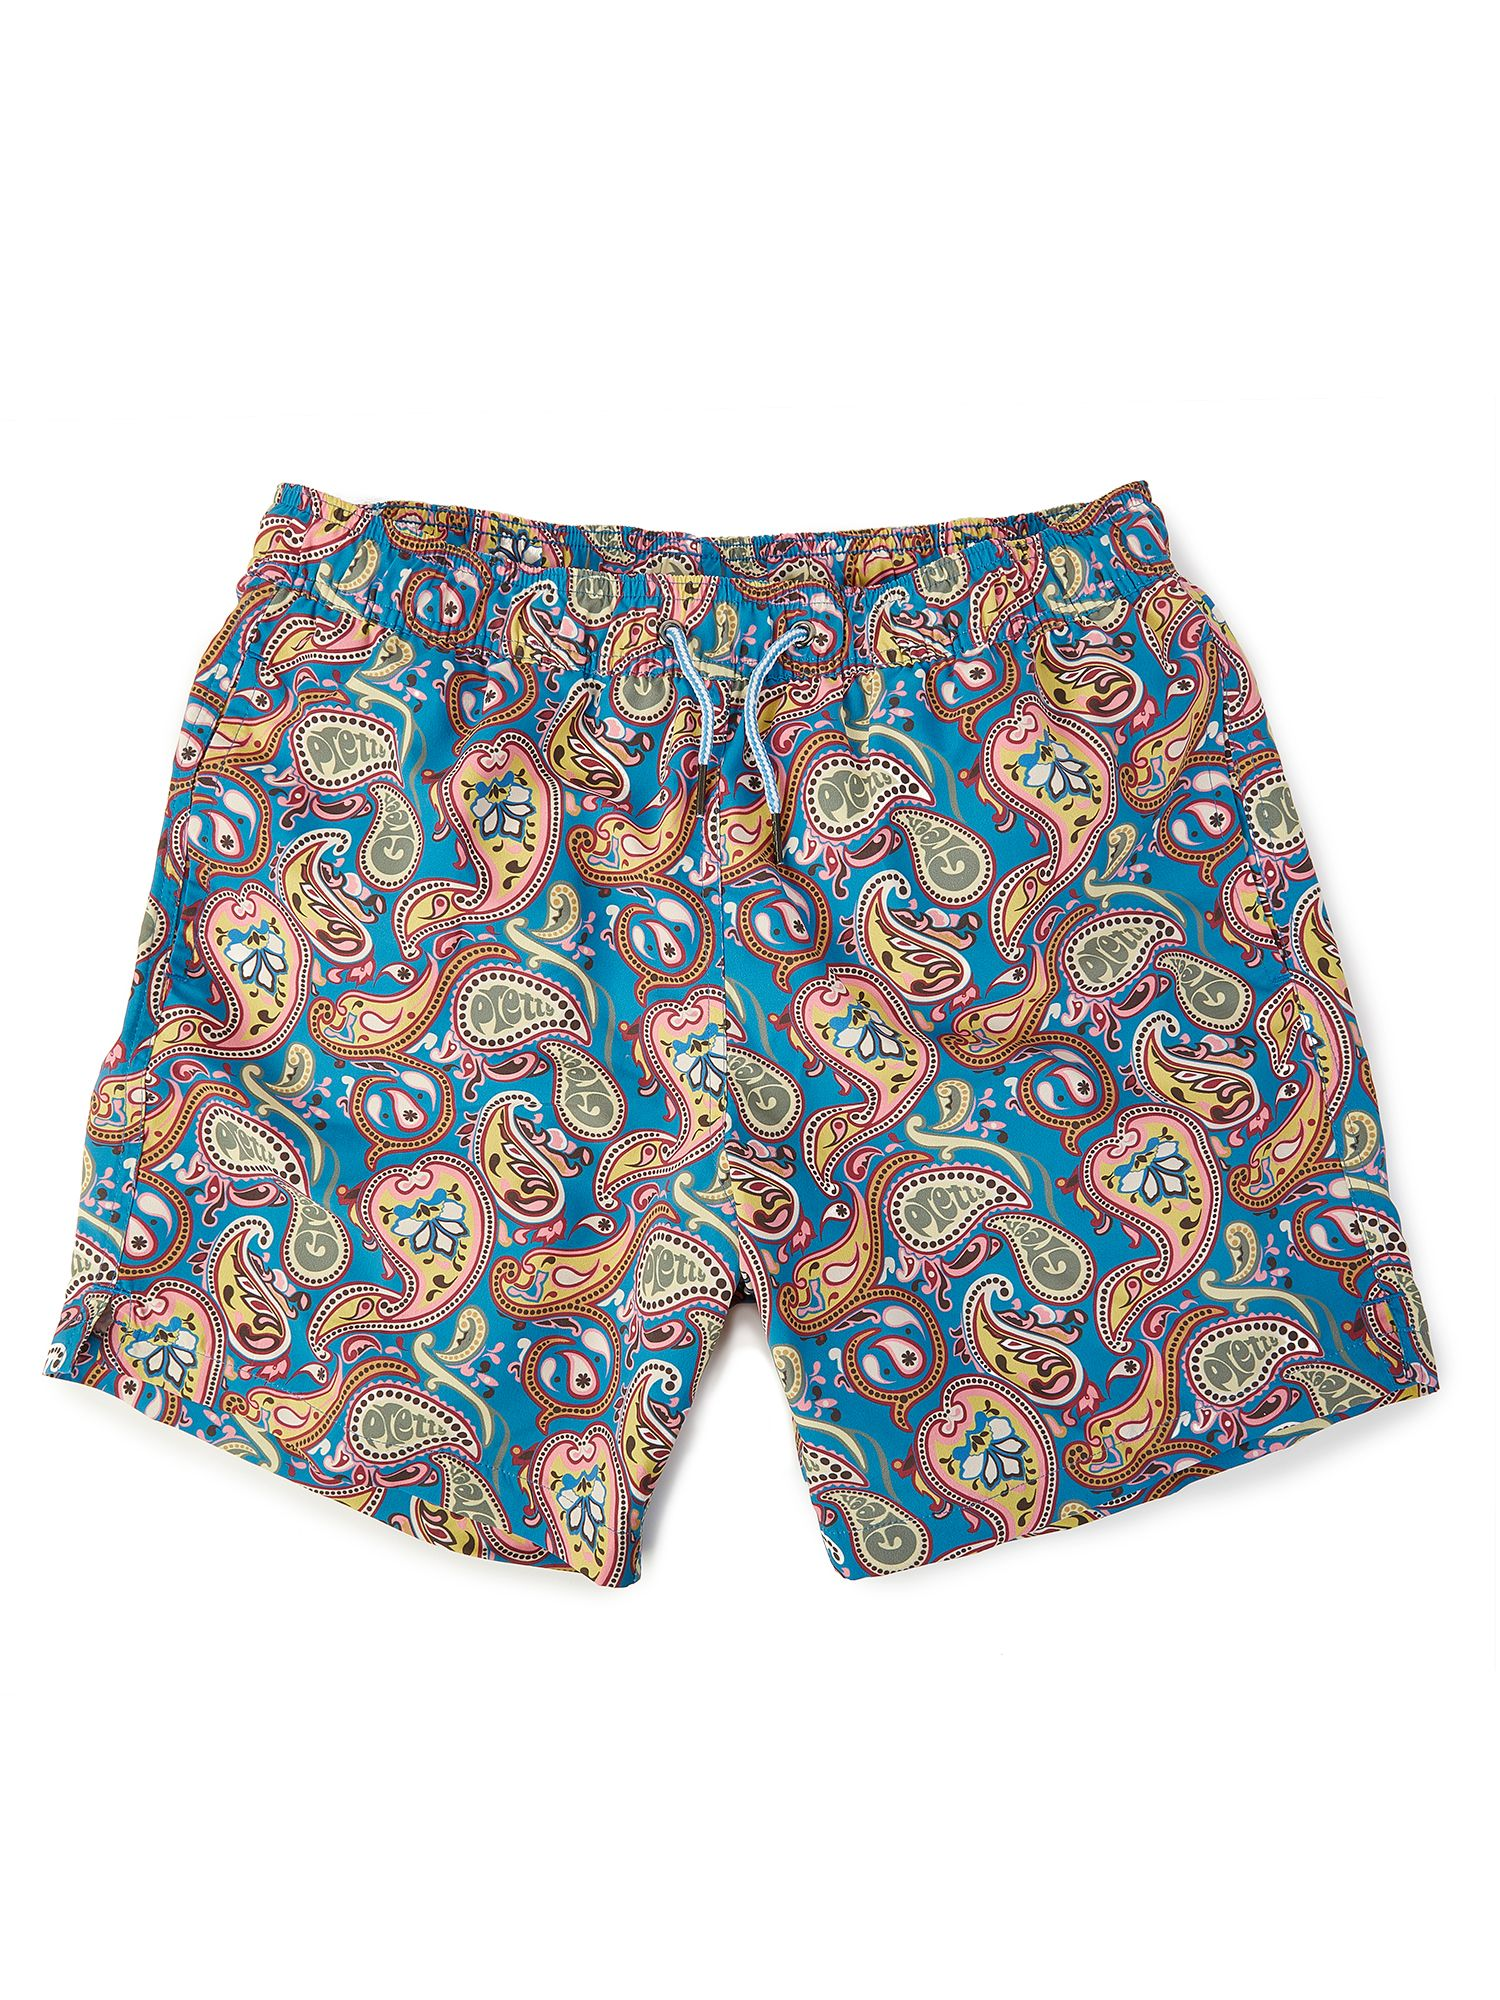 Men's Pretty Green Vintage Paisley Swim Shorts, Multi-Coloured